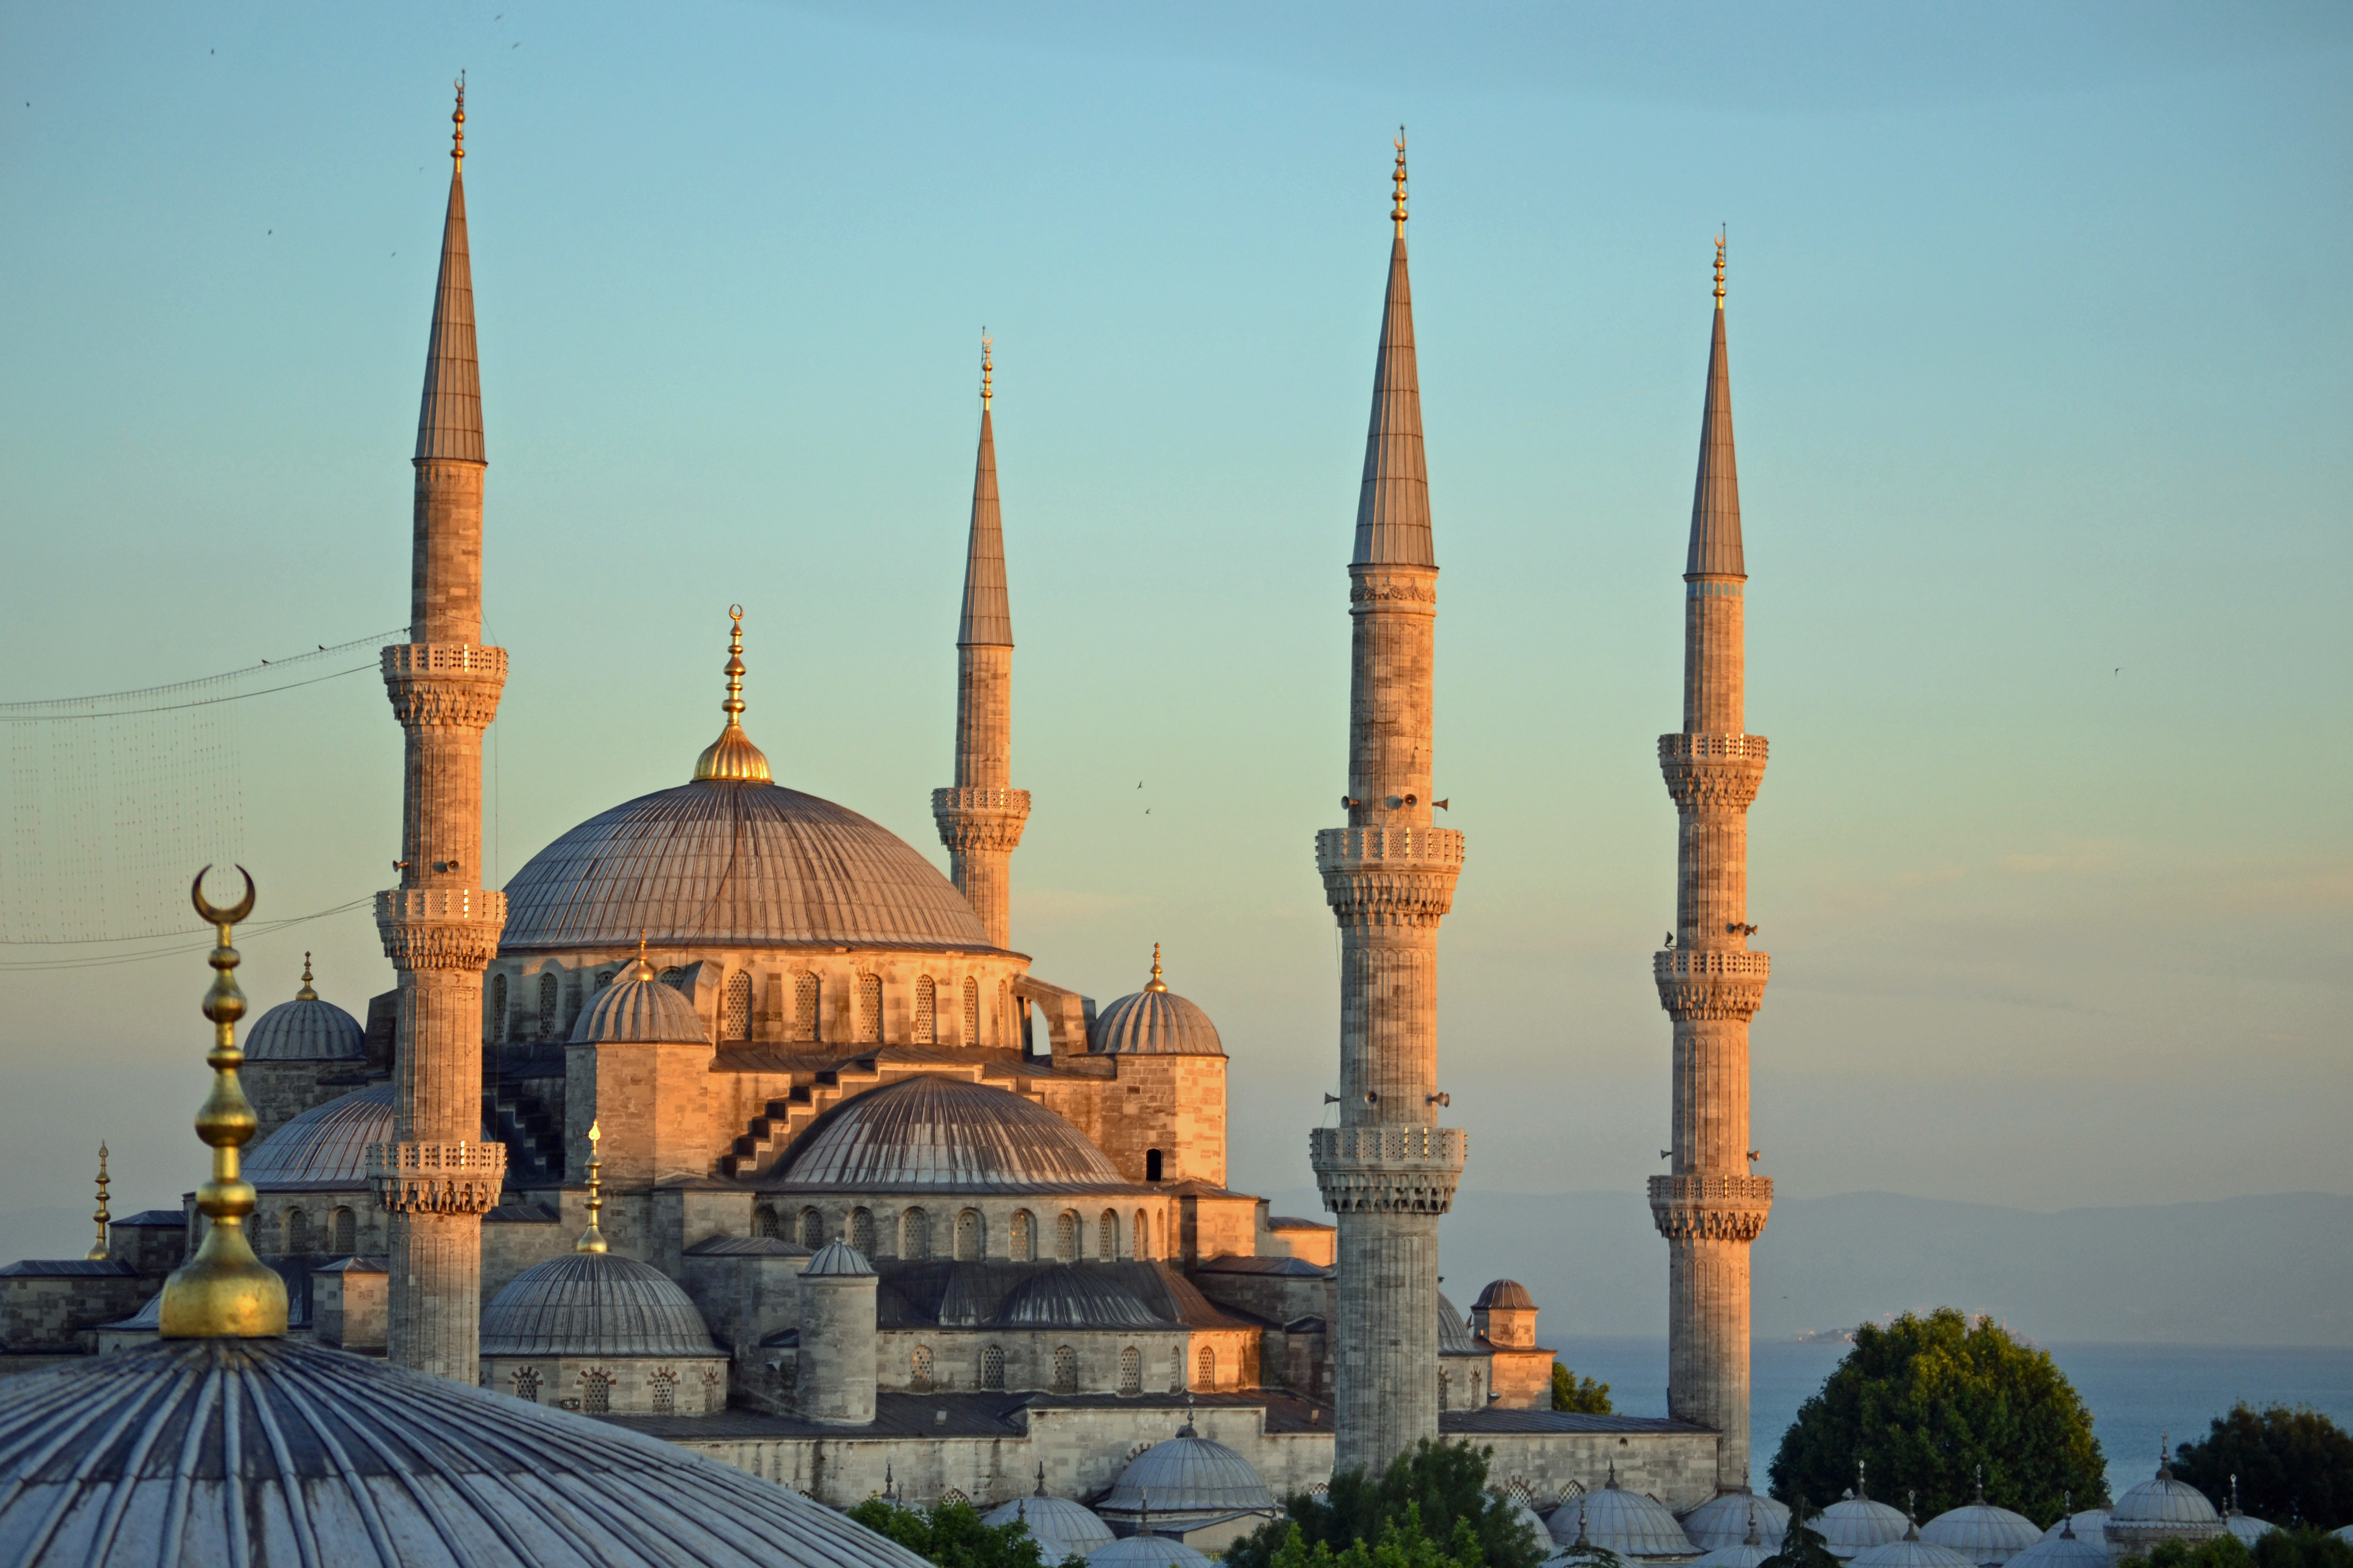 Sultan Ahmed Mosque - Wikipedia